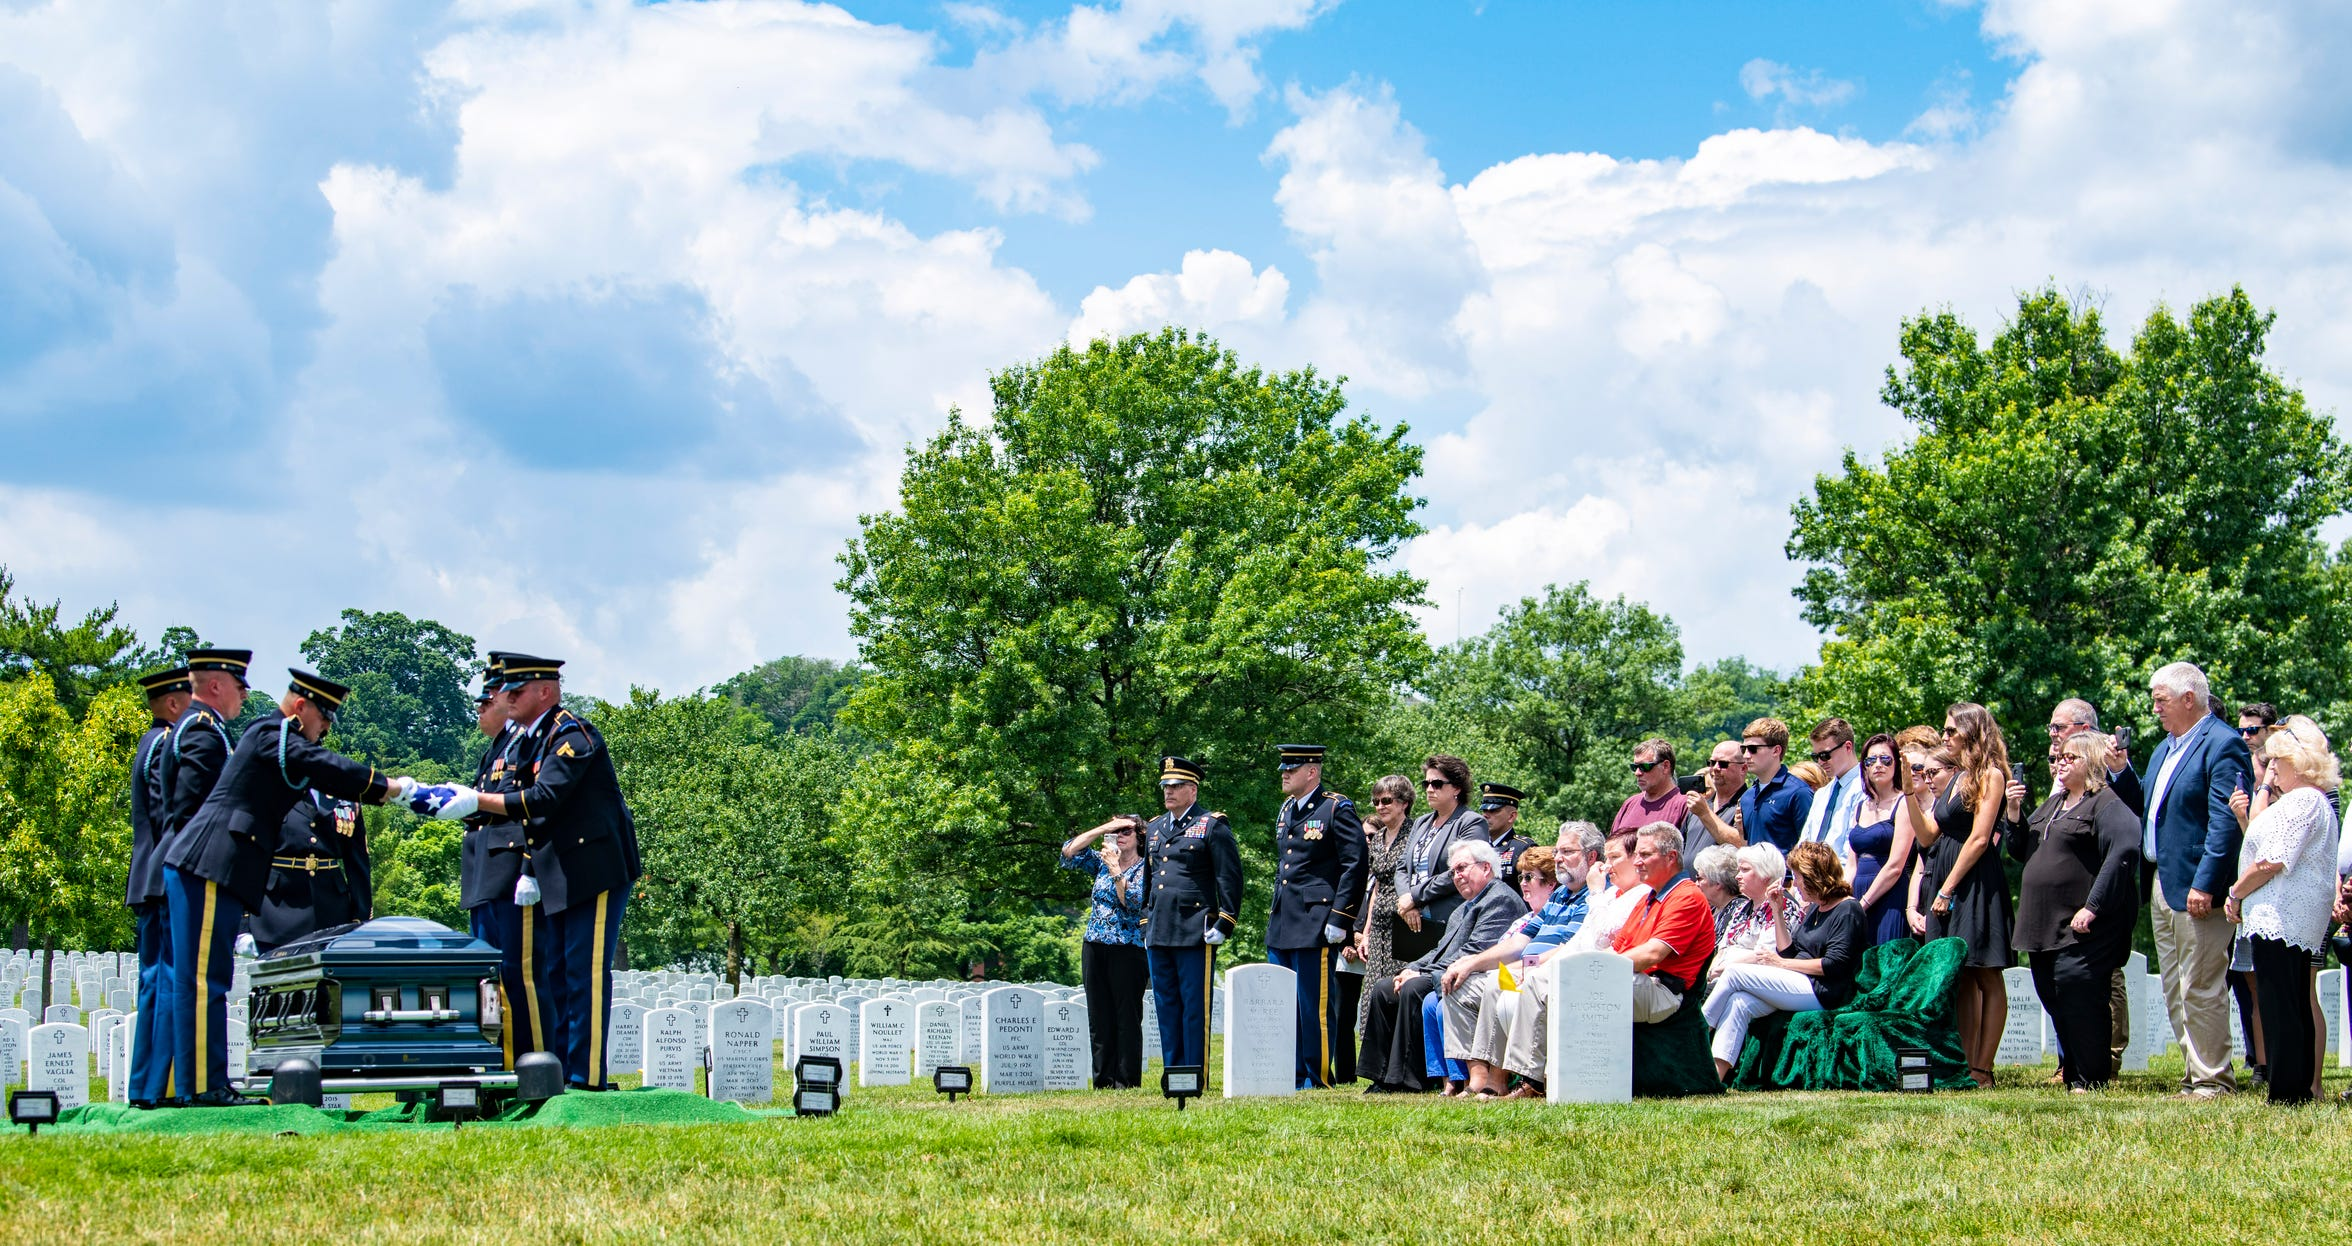 U.S. Army World War II veteran Carl Mann of Evansville, Ind., is buried at Arlington National Cemetery on June 6, 2019 in Arlington, VA. For his service in World War II, Mann was awarded three Purple Hearts and seven Bronze Stars. Mann died on March 30, 2019 at the age of 96.